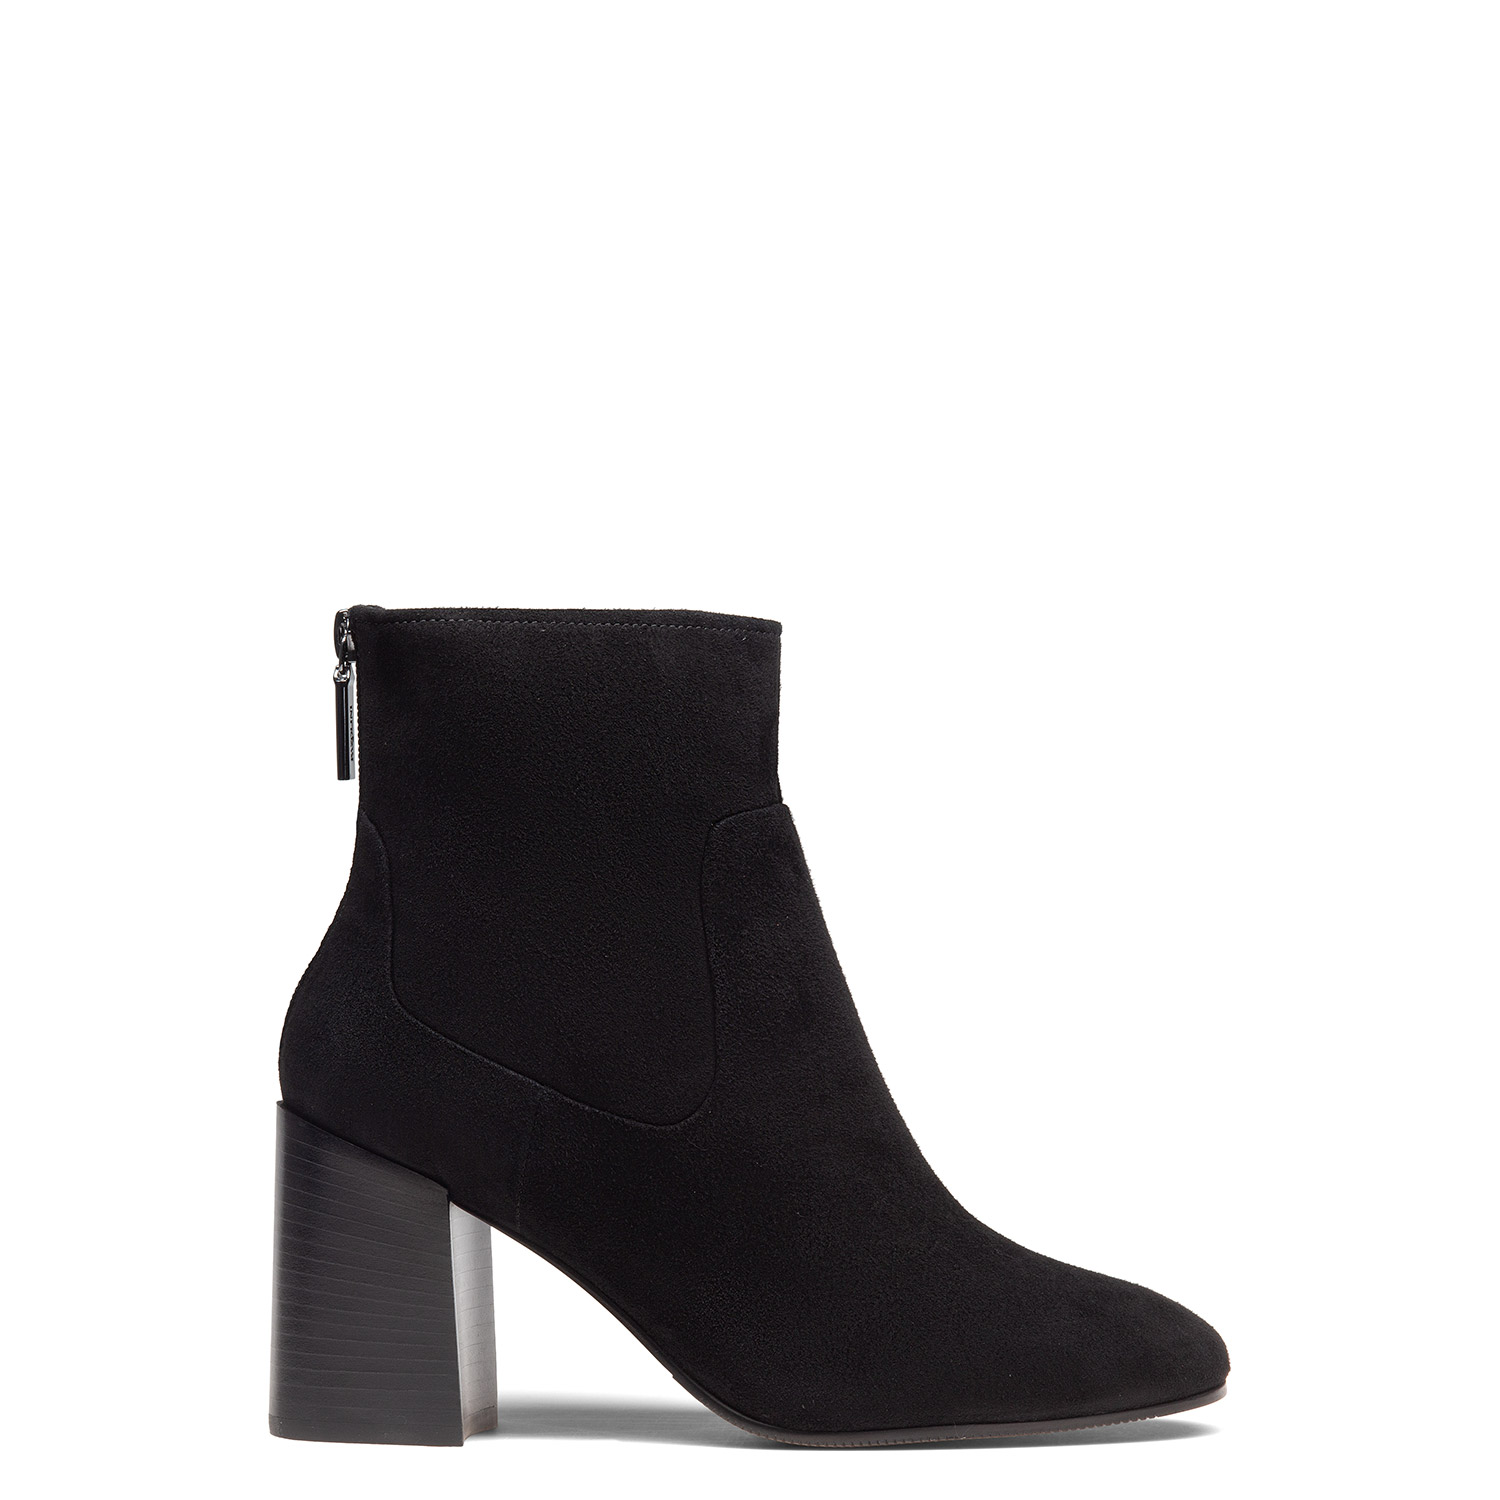 Women's ankle boots PAZOLINI WN-IVN2-1